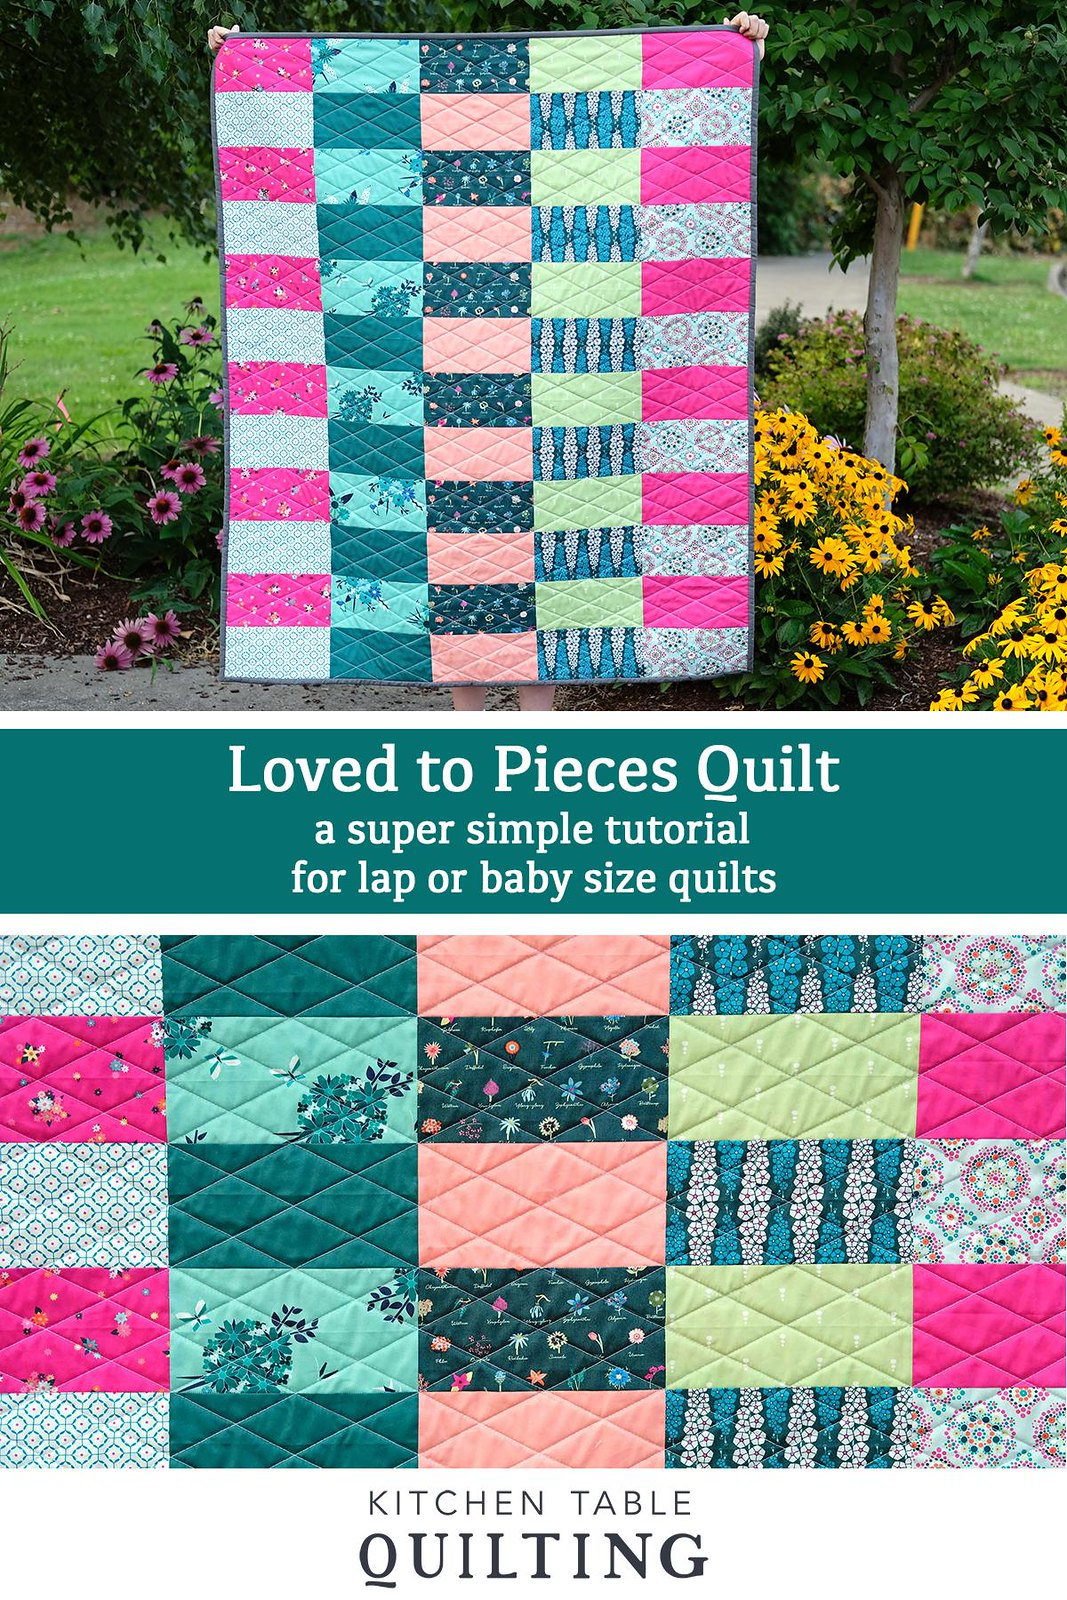 Loved to Pieces Super Simple, Beginner Friendly Quilt Tutorial - Kitchen Table Quilting